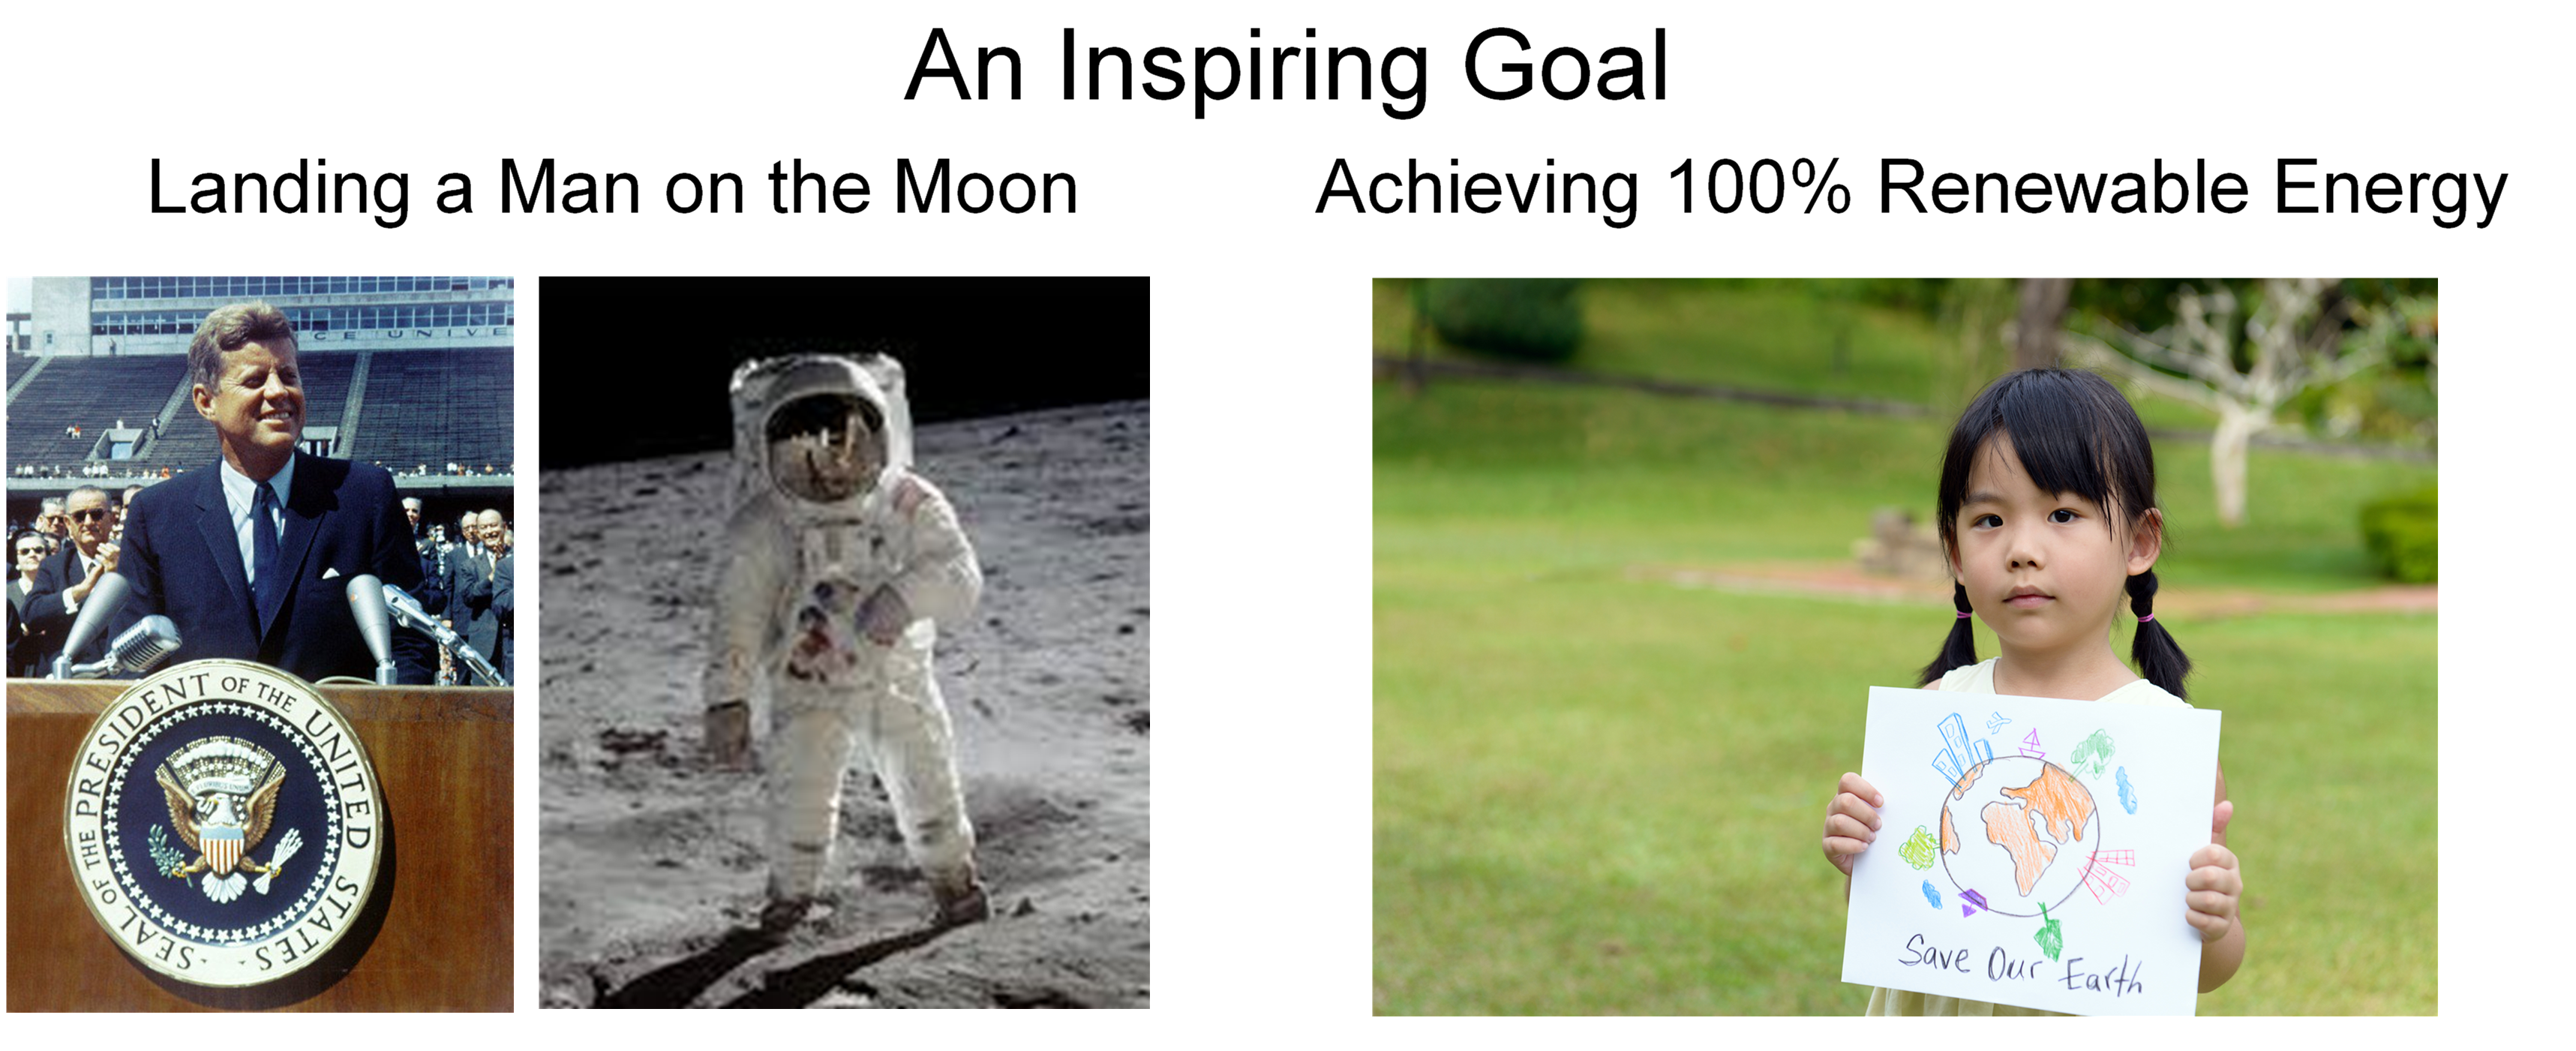 A Landing-a-Man-on-the-Moon Goal for Achieving 100% Renewable Energy